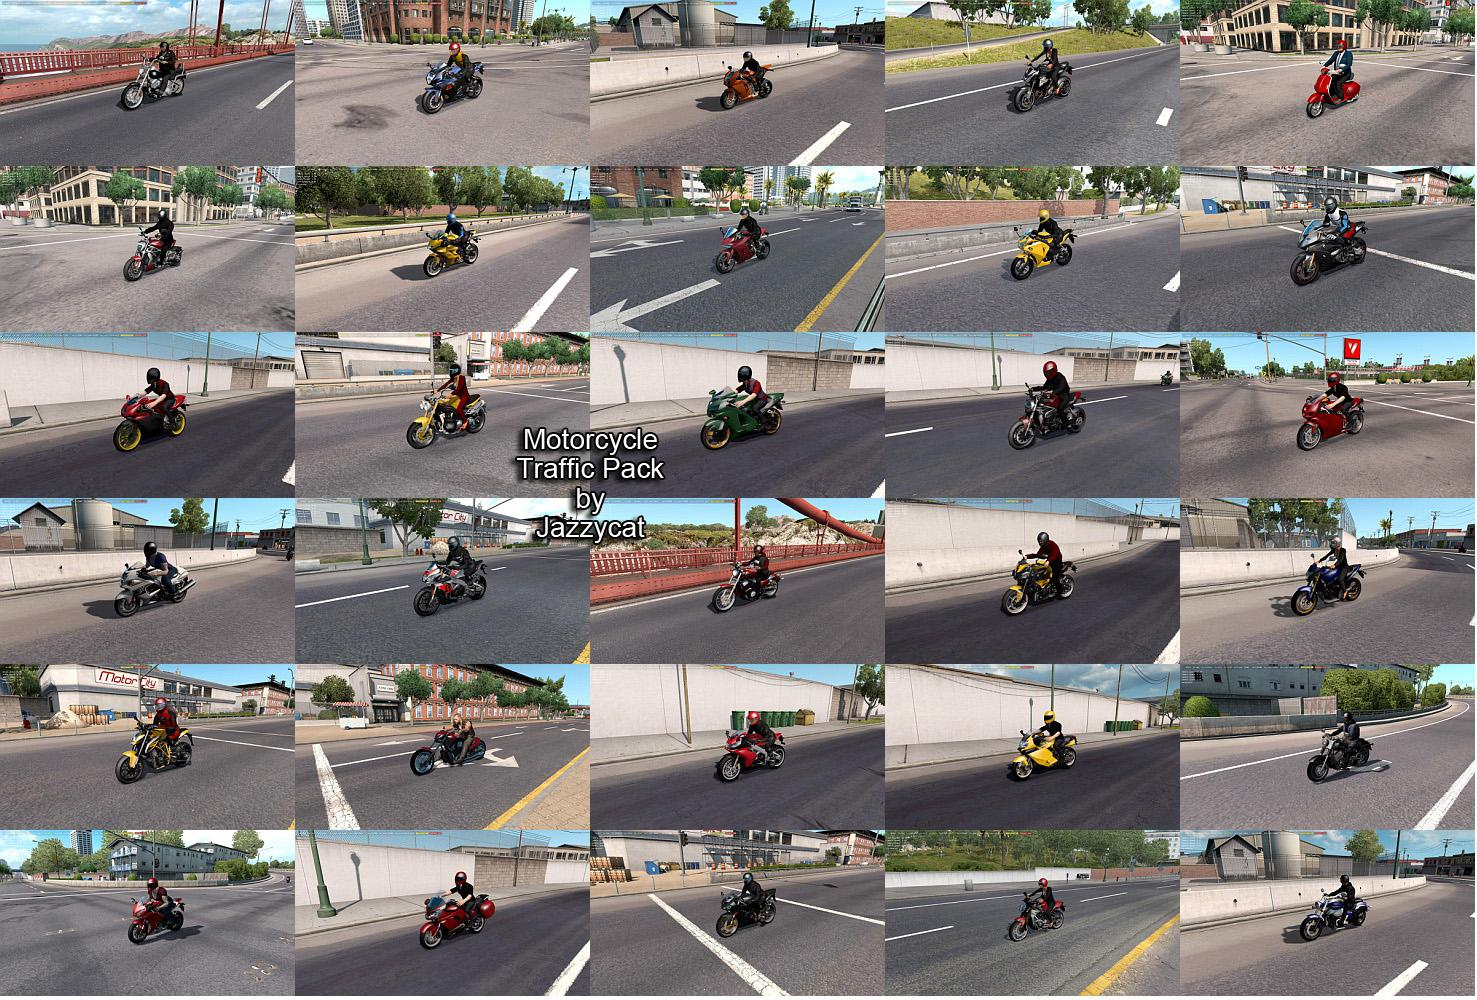 [ATS] Motorcycles in Traffic Pack v3.5 (1.35.x) • ATS mods